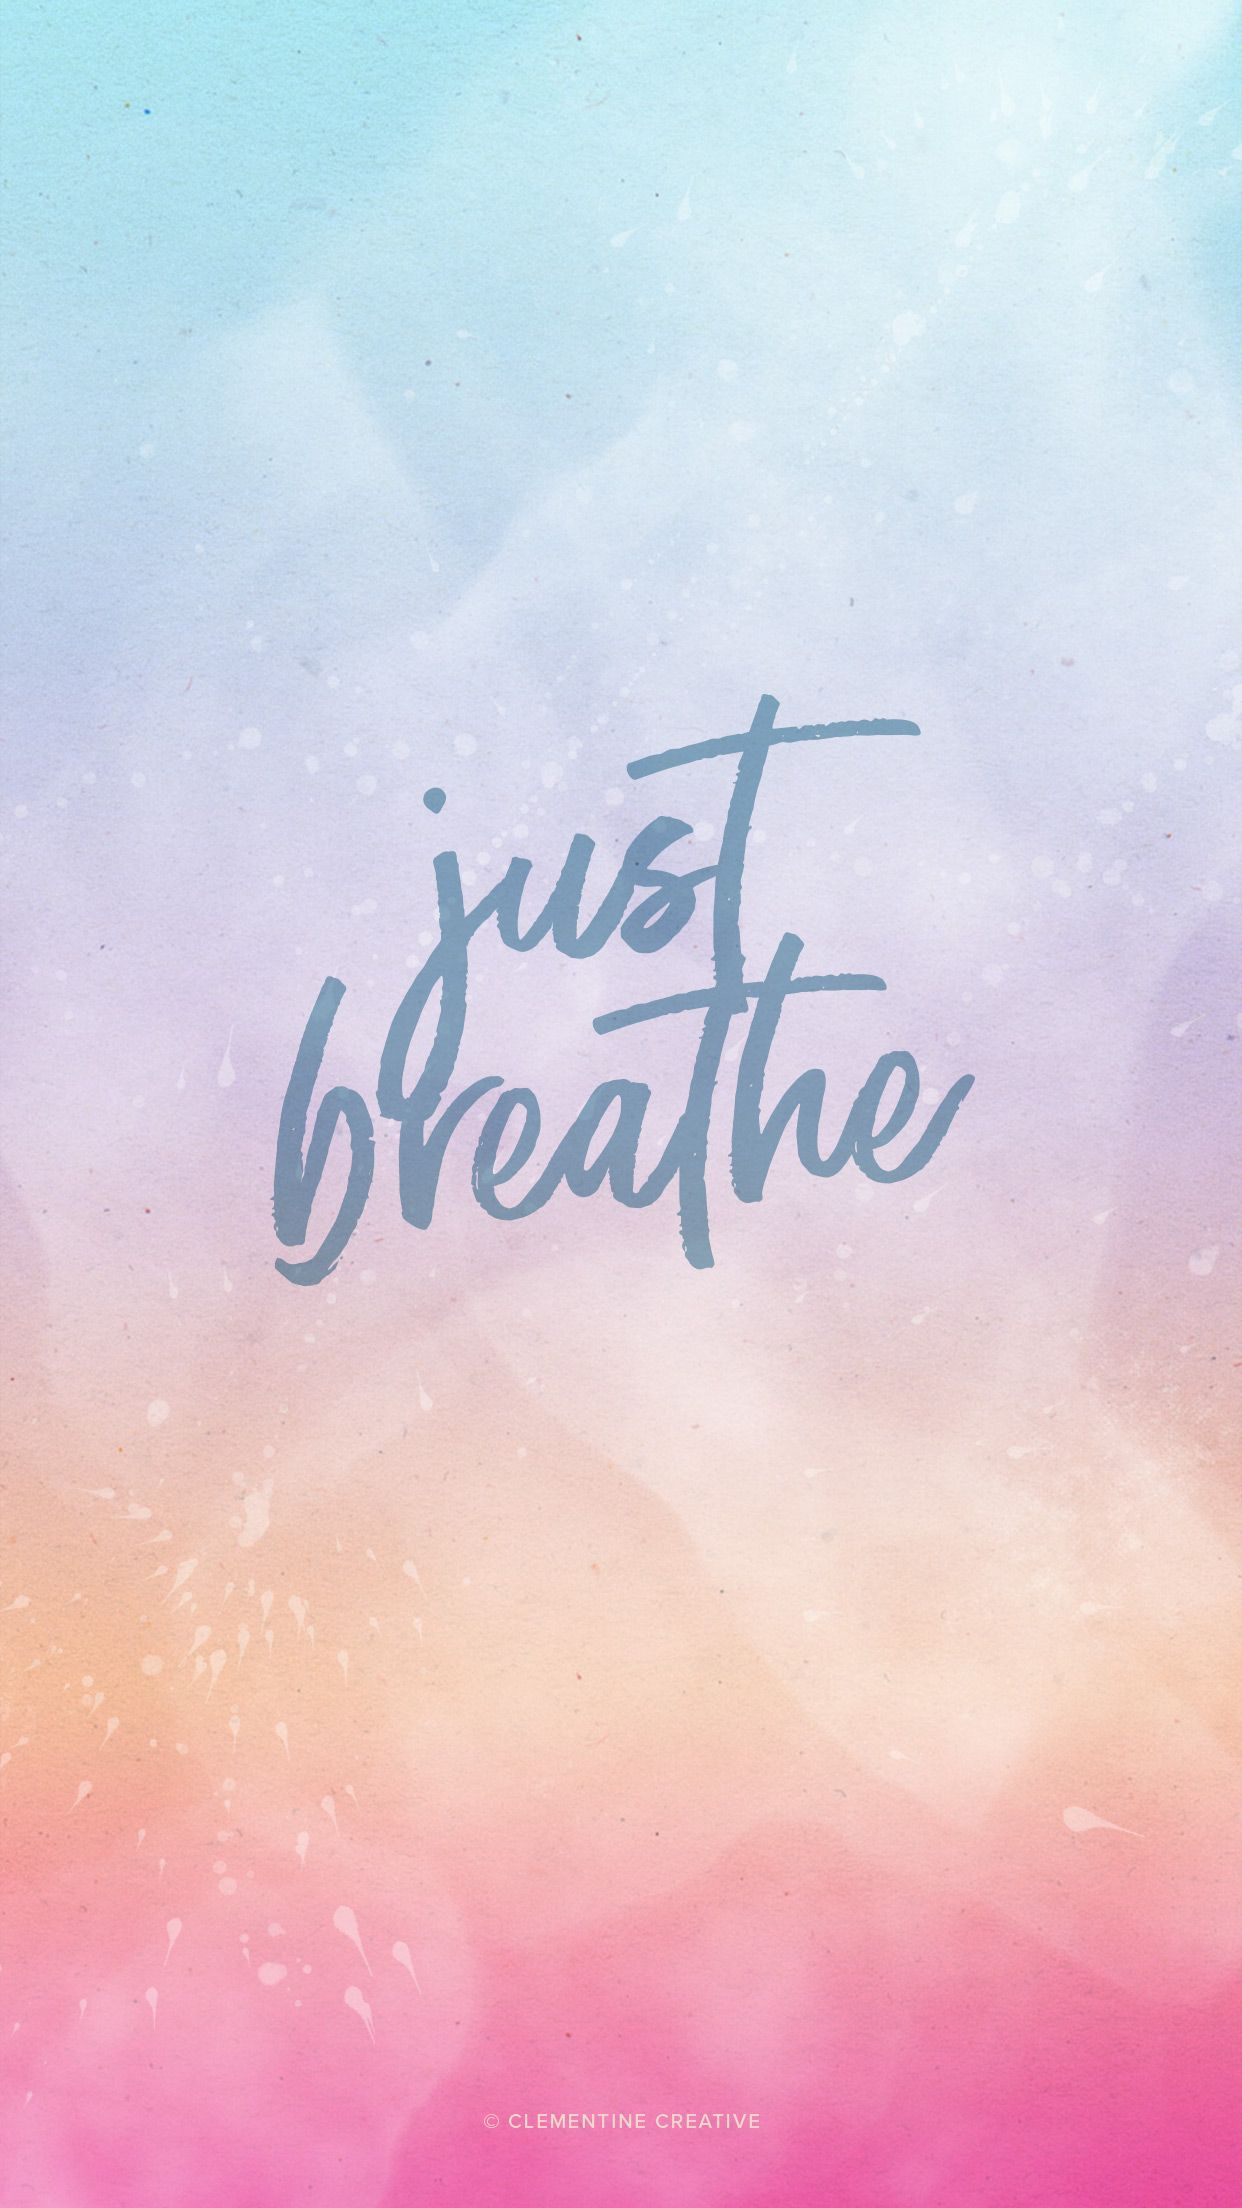 Just Breathe - Free Desktop, Tablet and Mobile Wallpapers  Phone